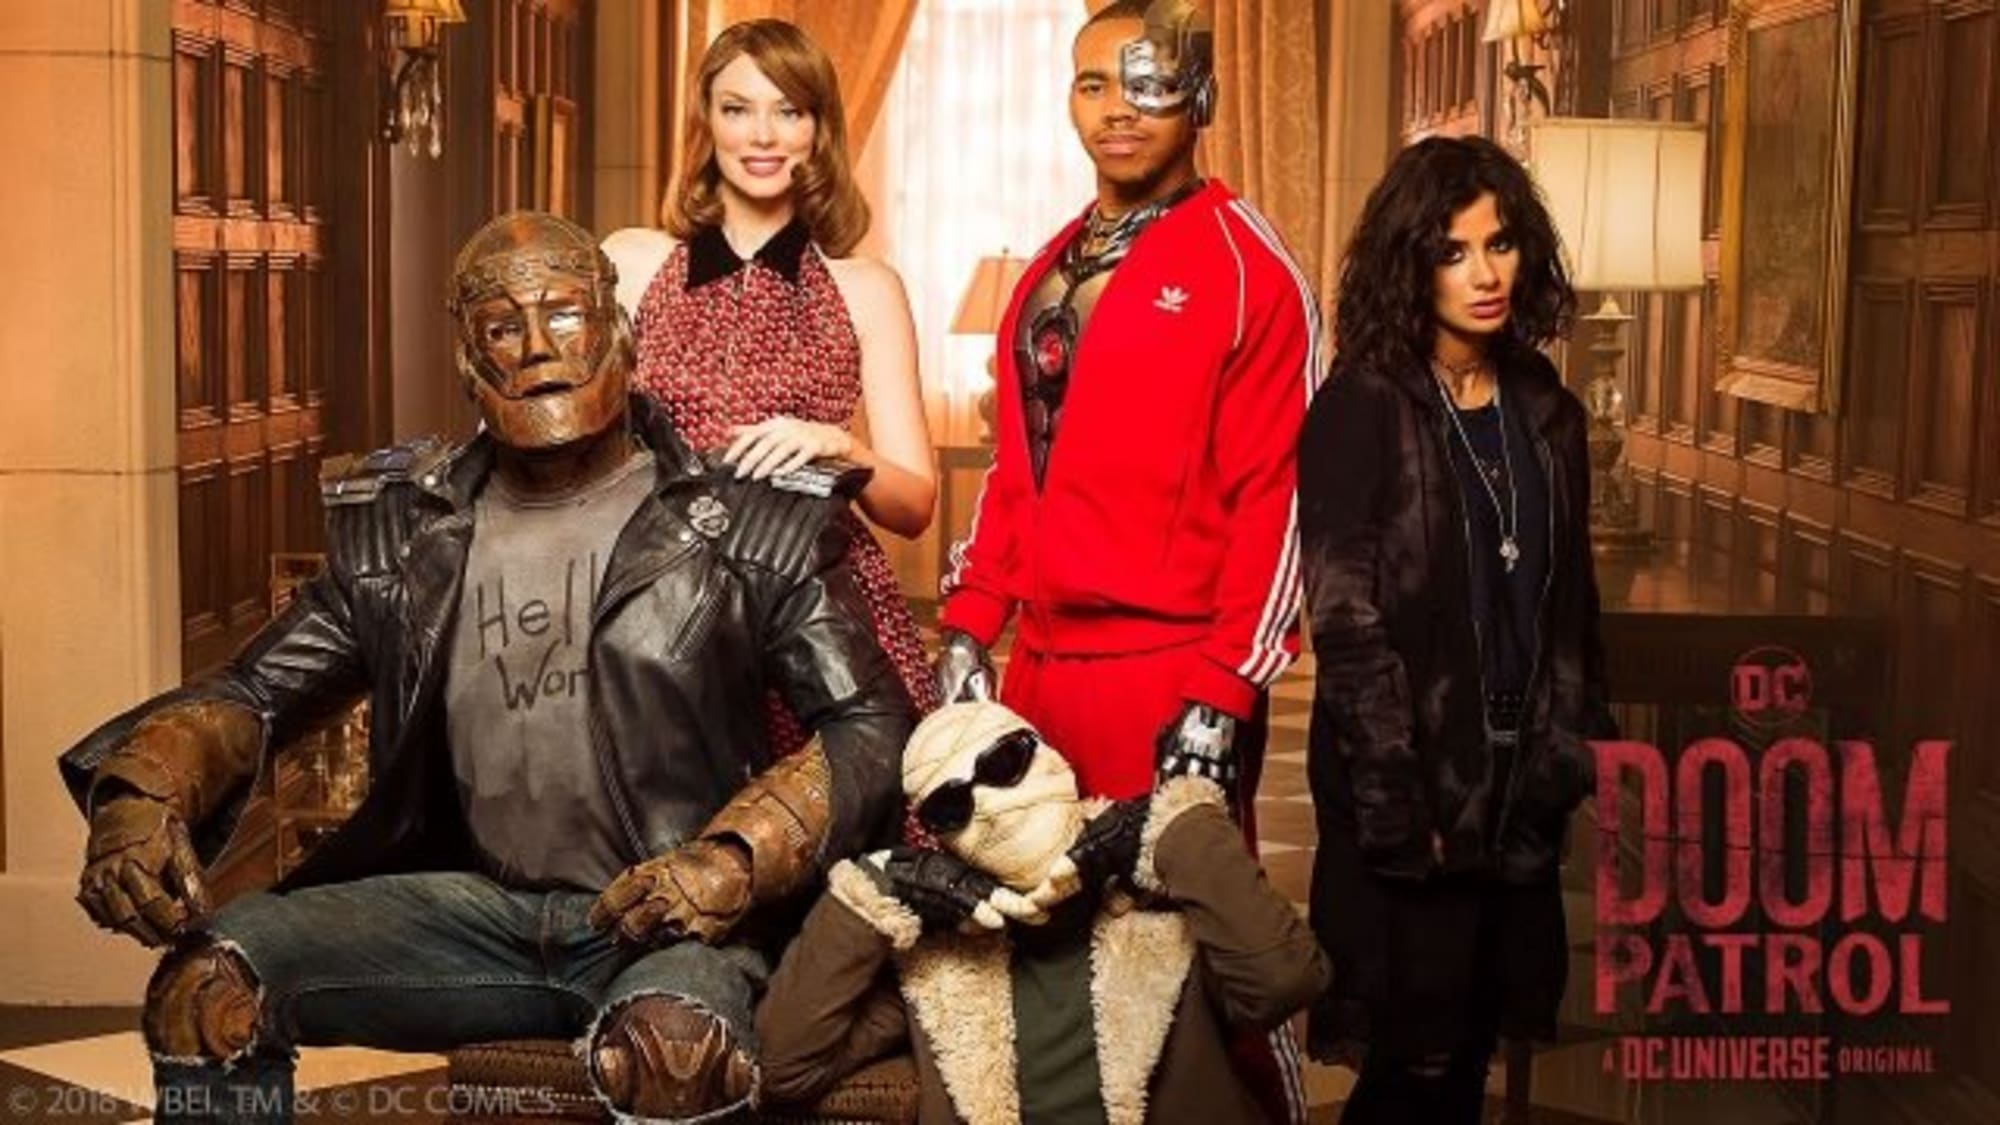 What Happens In Doom Patrol Season 1 Episode 1